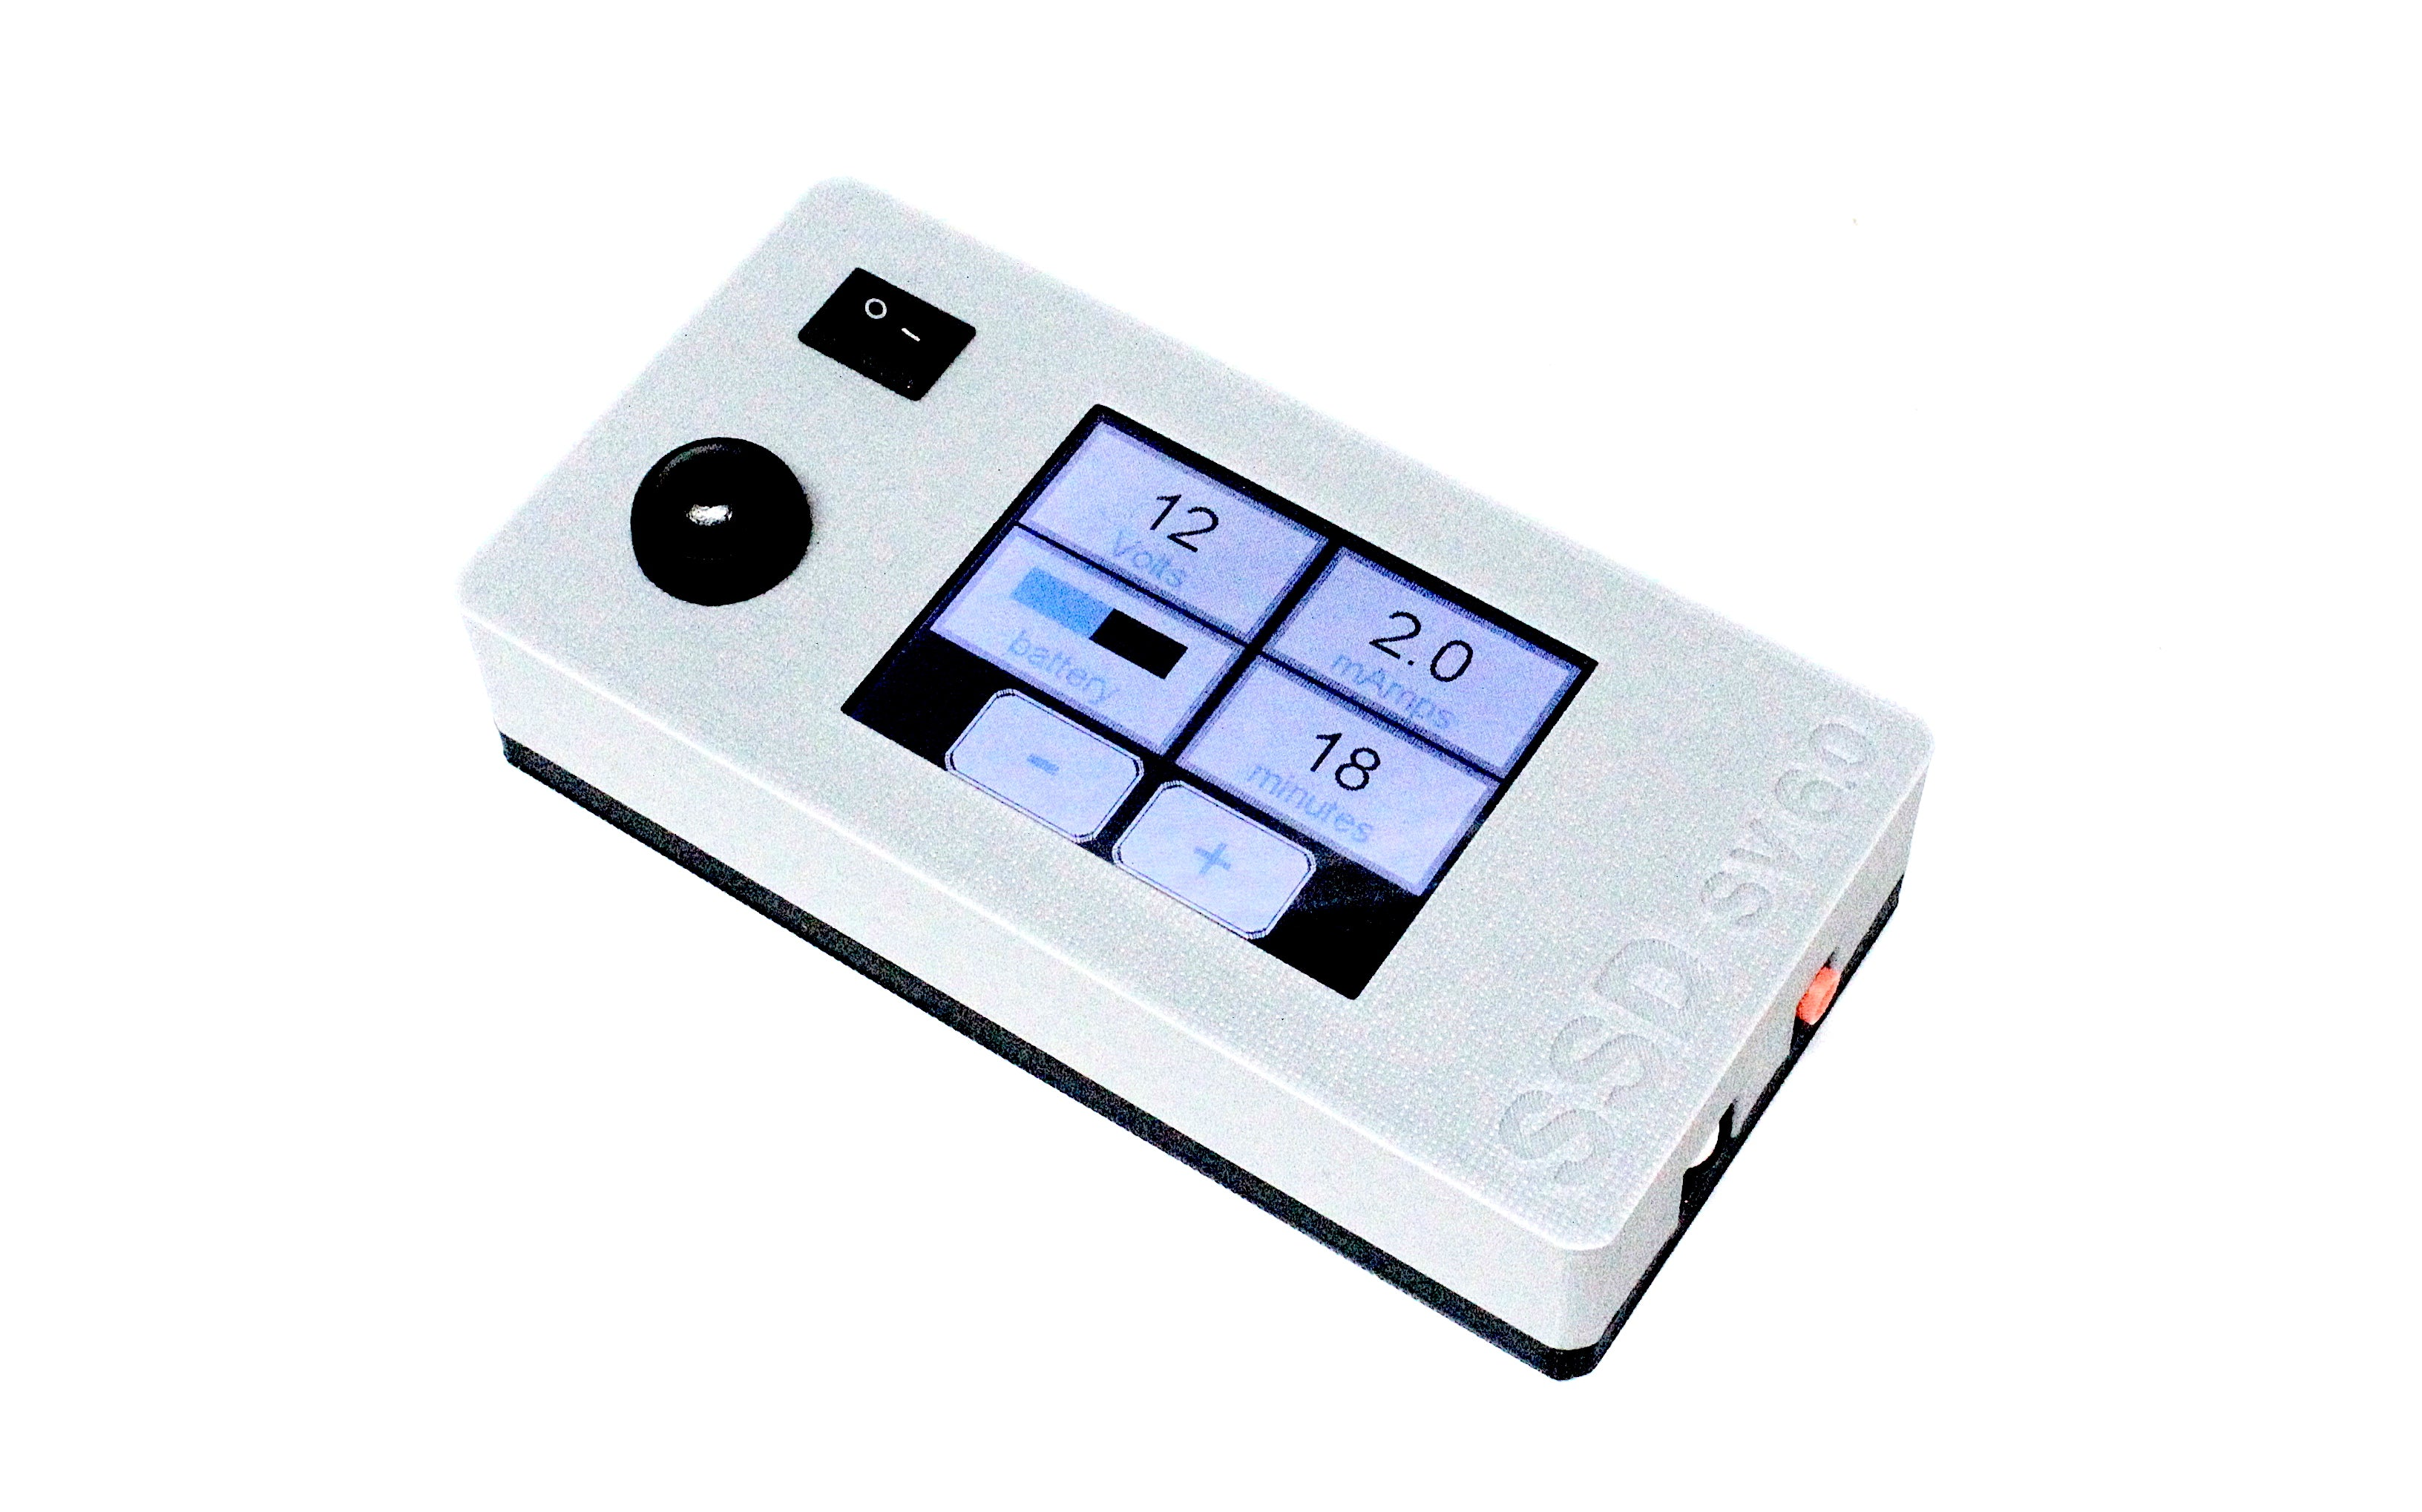 Super Specific Devices tDCS Device 6.0 Touchscreen